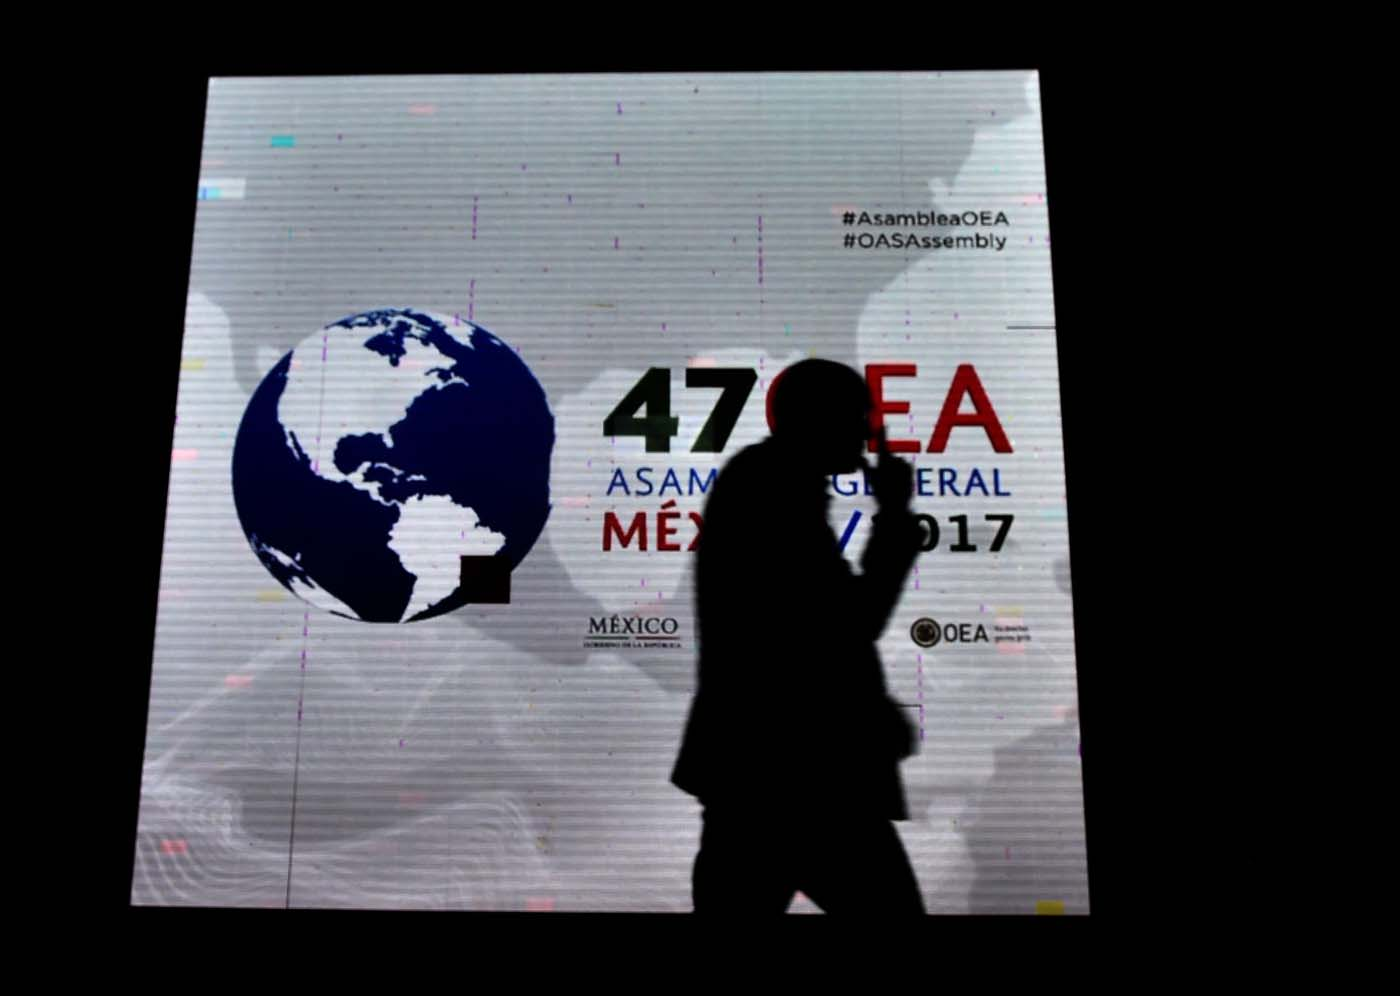 A man passes by a screen displaying the logo of the 47th General Assembly of the Organization of American States (OAS) in the Mexican resort city of Cancun, on June 18, 2017. Foreign ministers from the OAS discuss taking action on the crisis in Venezuela -- a meeting that has infuriated President Nicolas Maduro's government -- ahead of the regional group's general assembly, which runs from Monday through Wednesday. / AFP PHOTO / Pedro PARDO